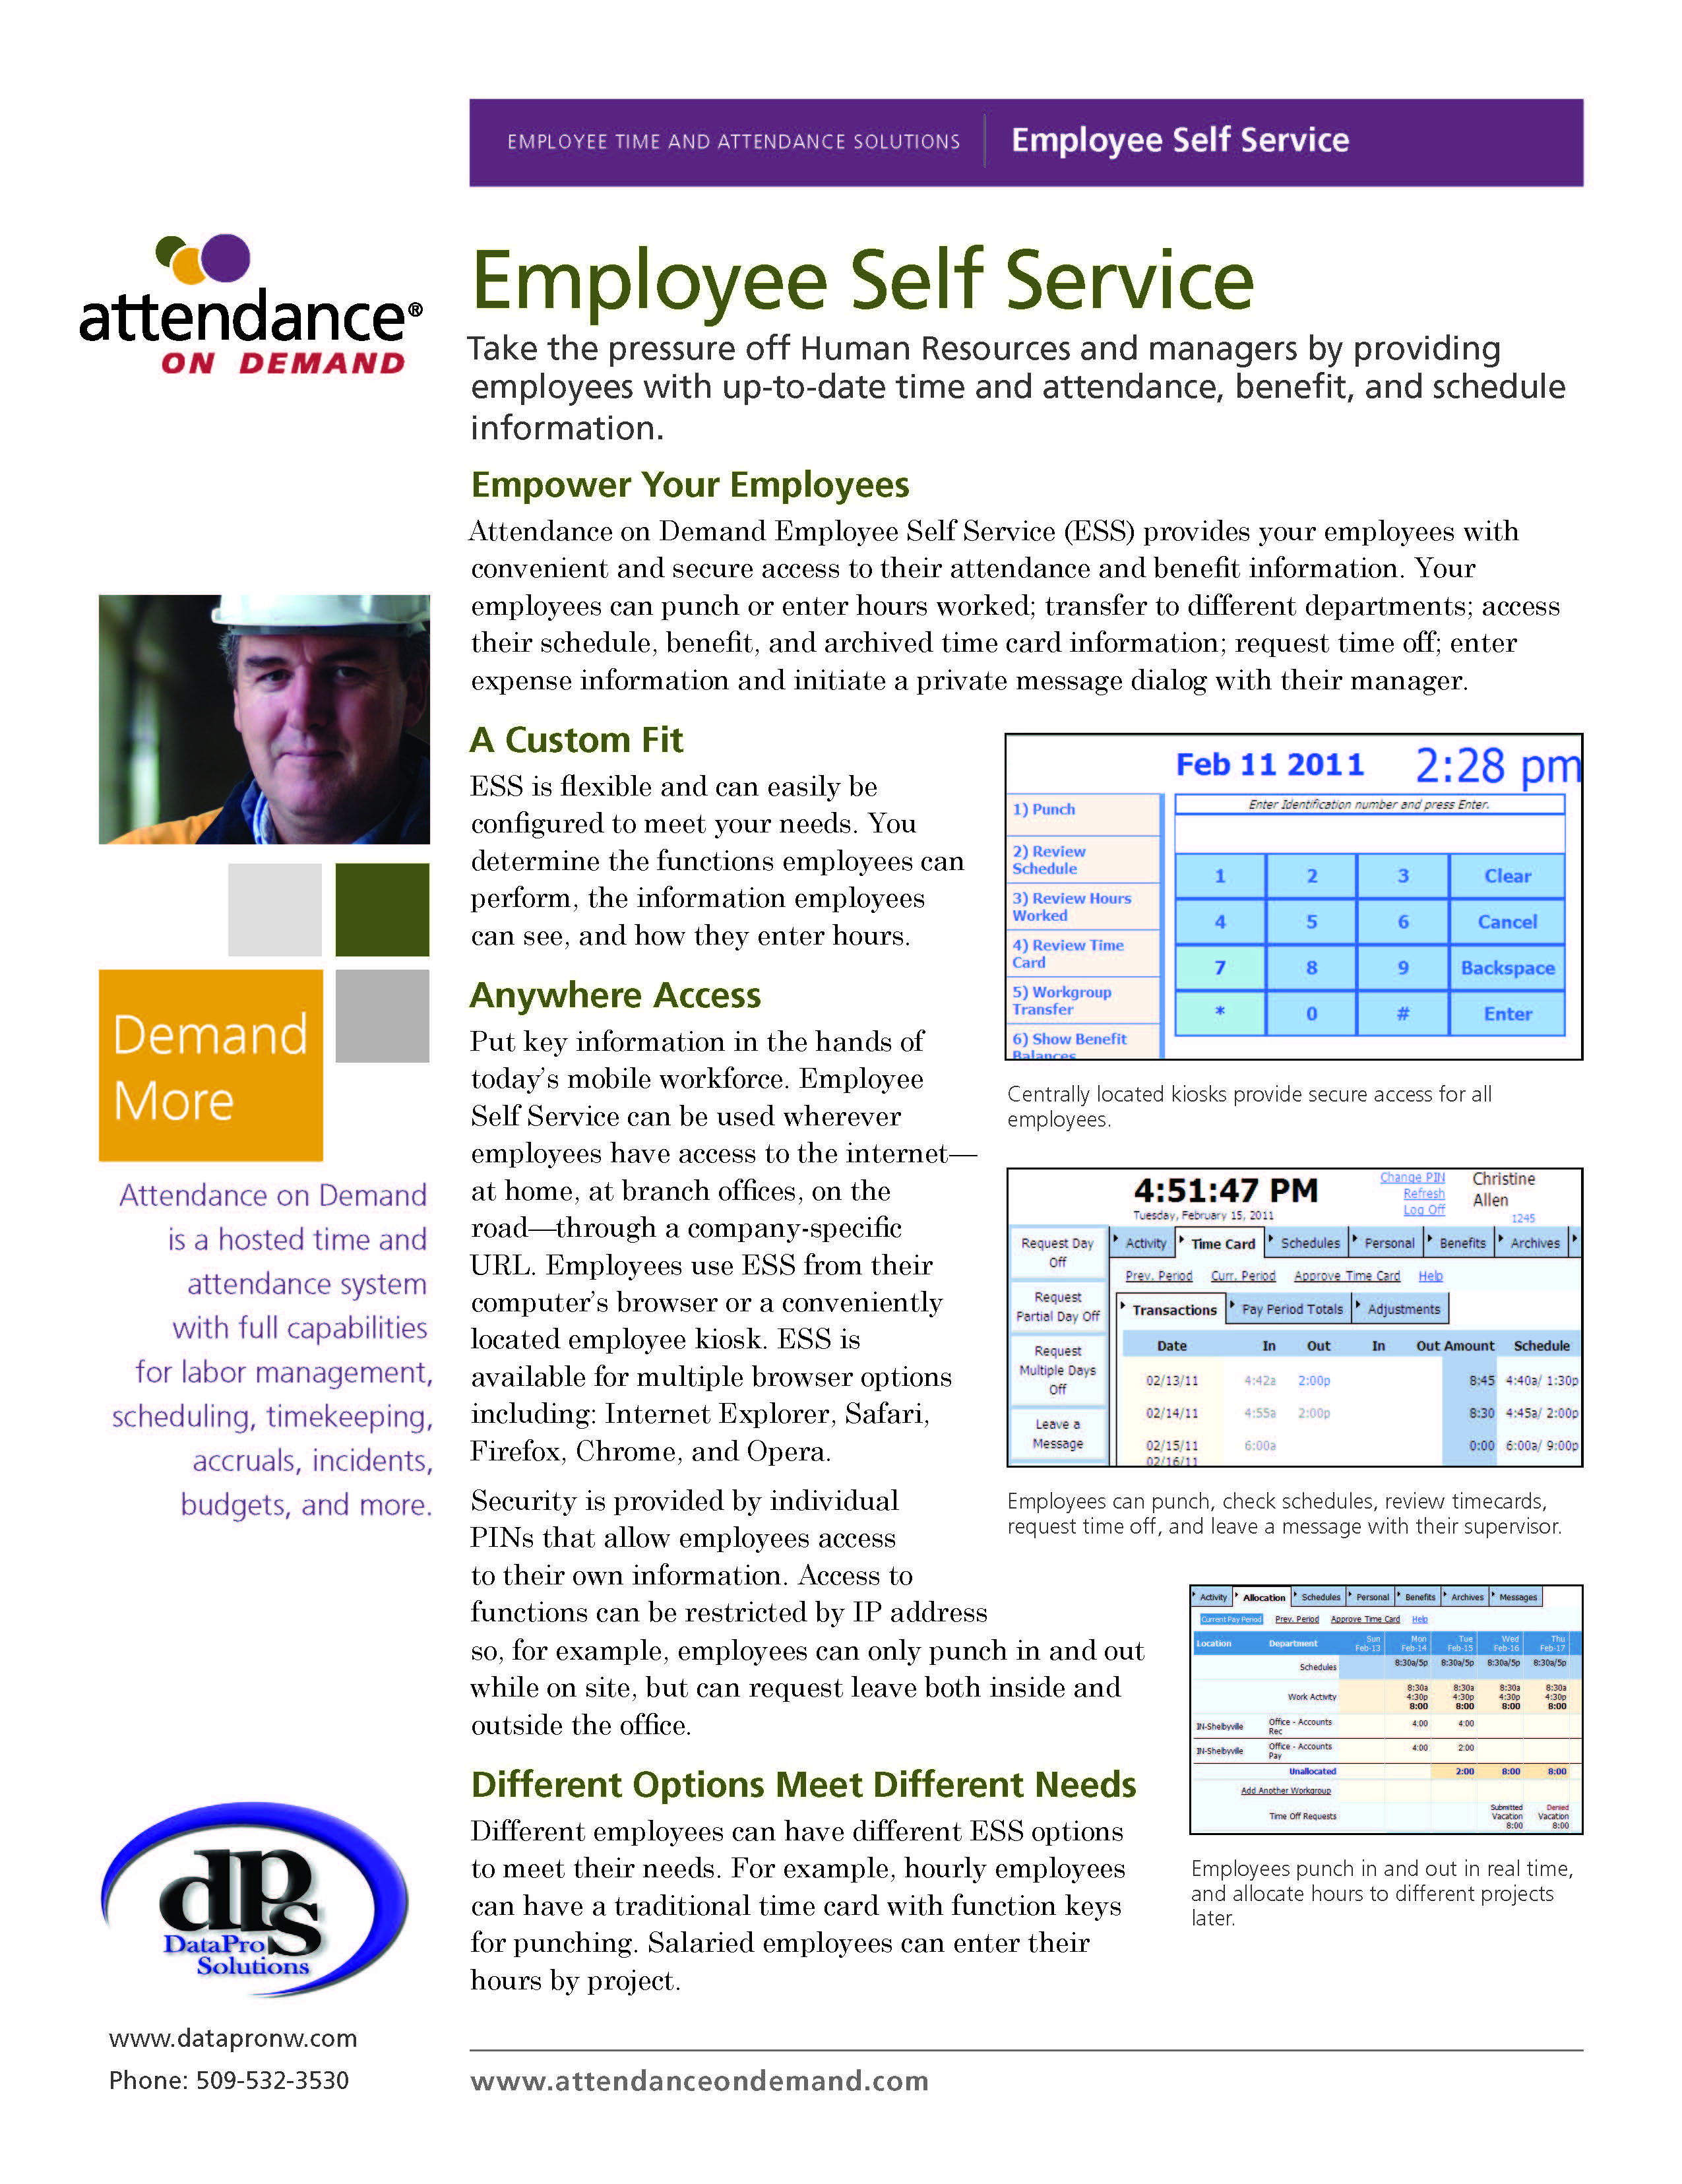 Time and Attendance Machine and Software Systems | Data Pro Solutions